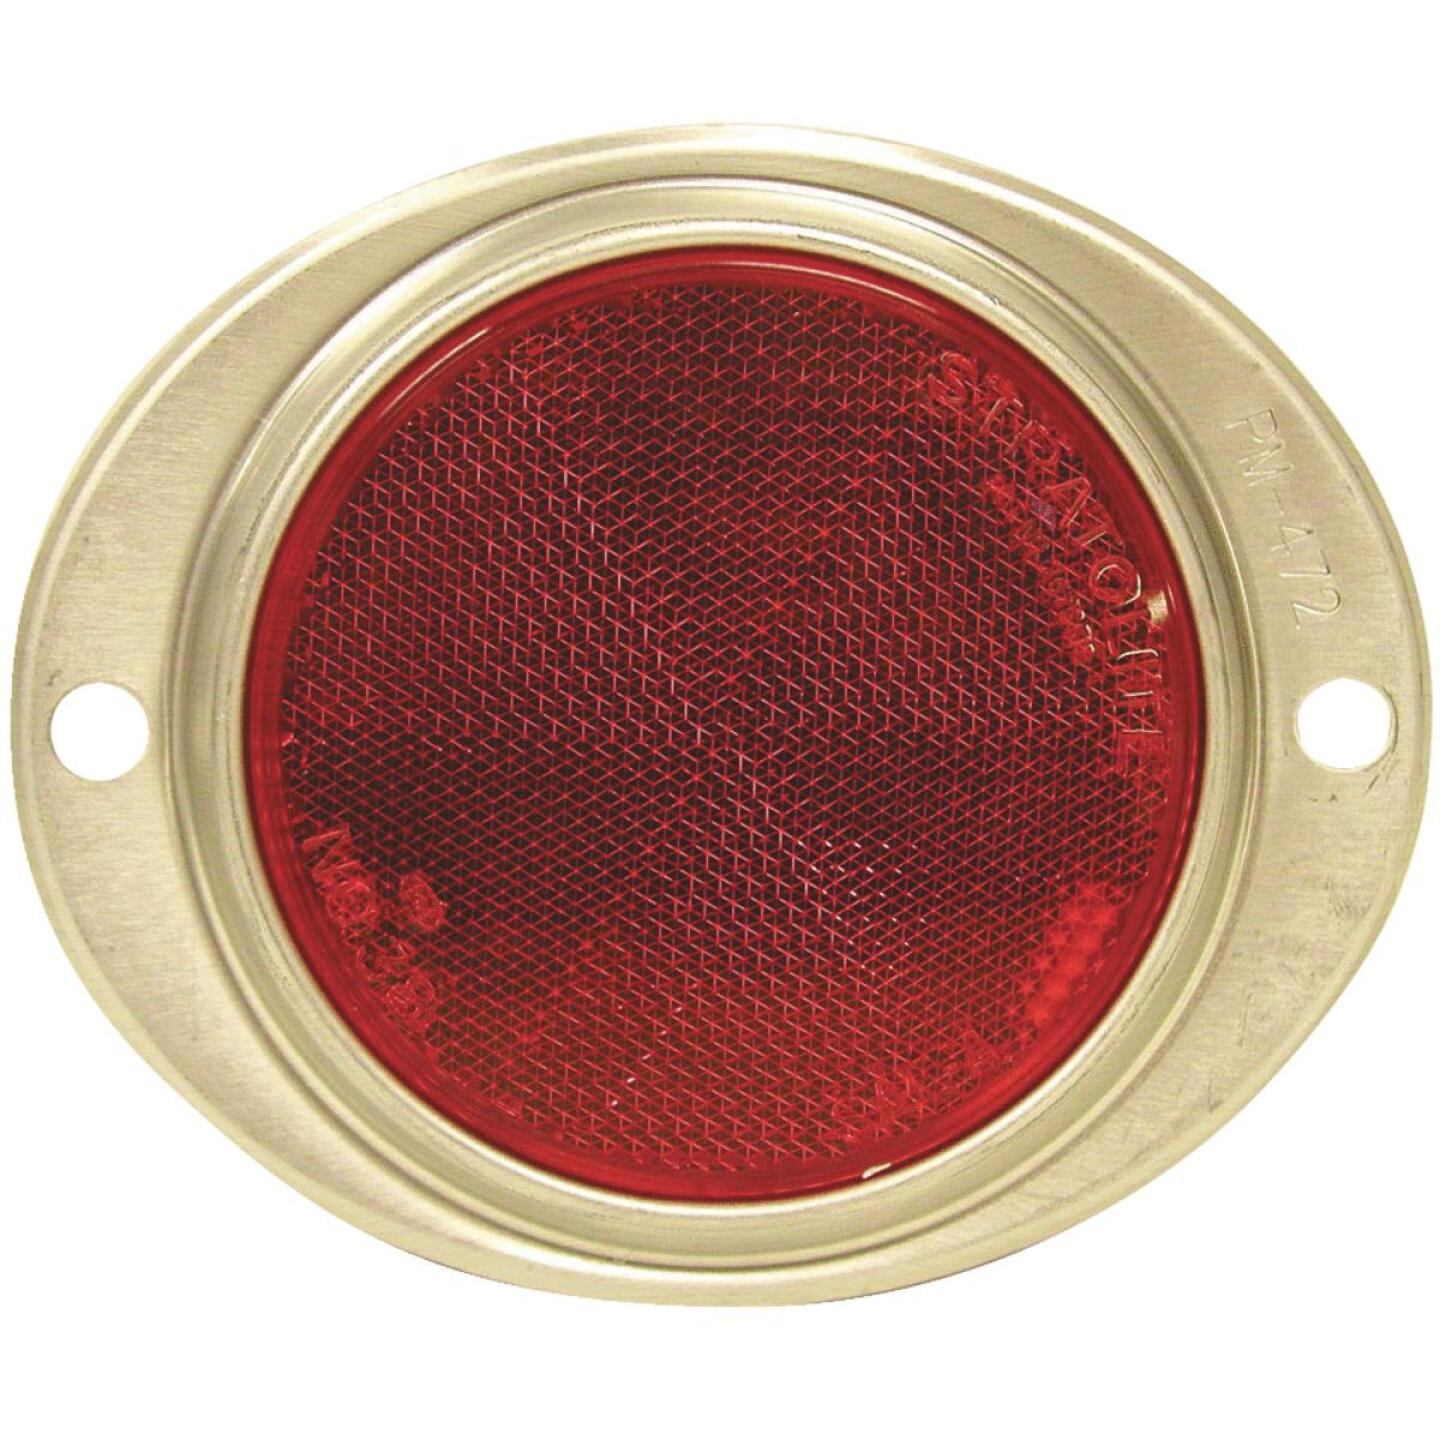 Peterson 3 In. Dia. Red Oval Reflector Image 1